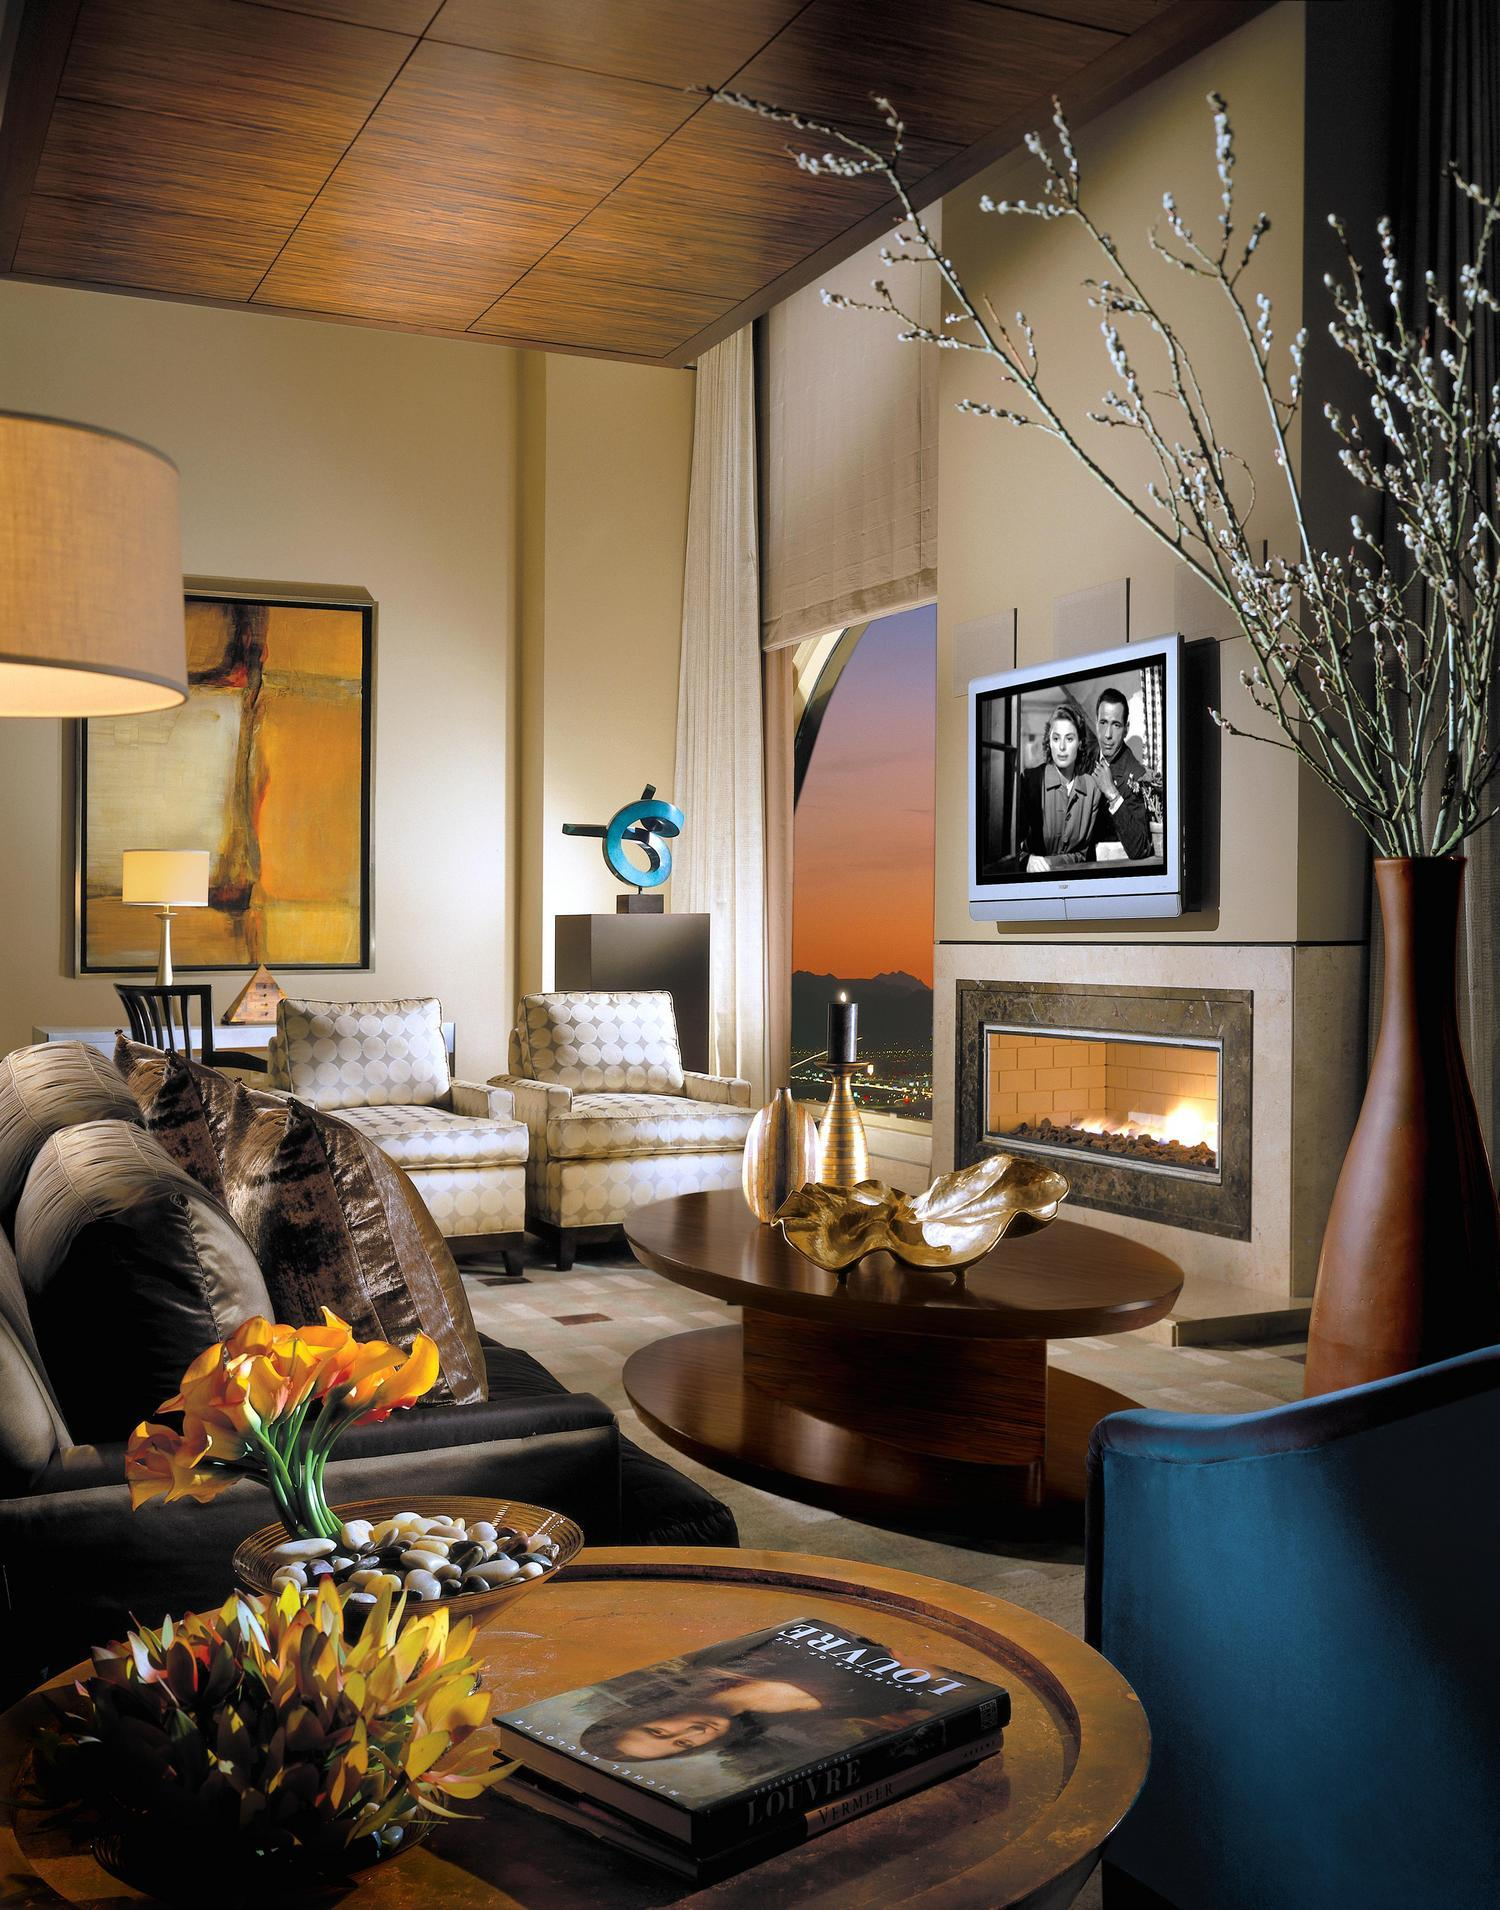 Presidential Suite at Bellagio